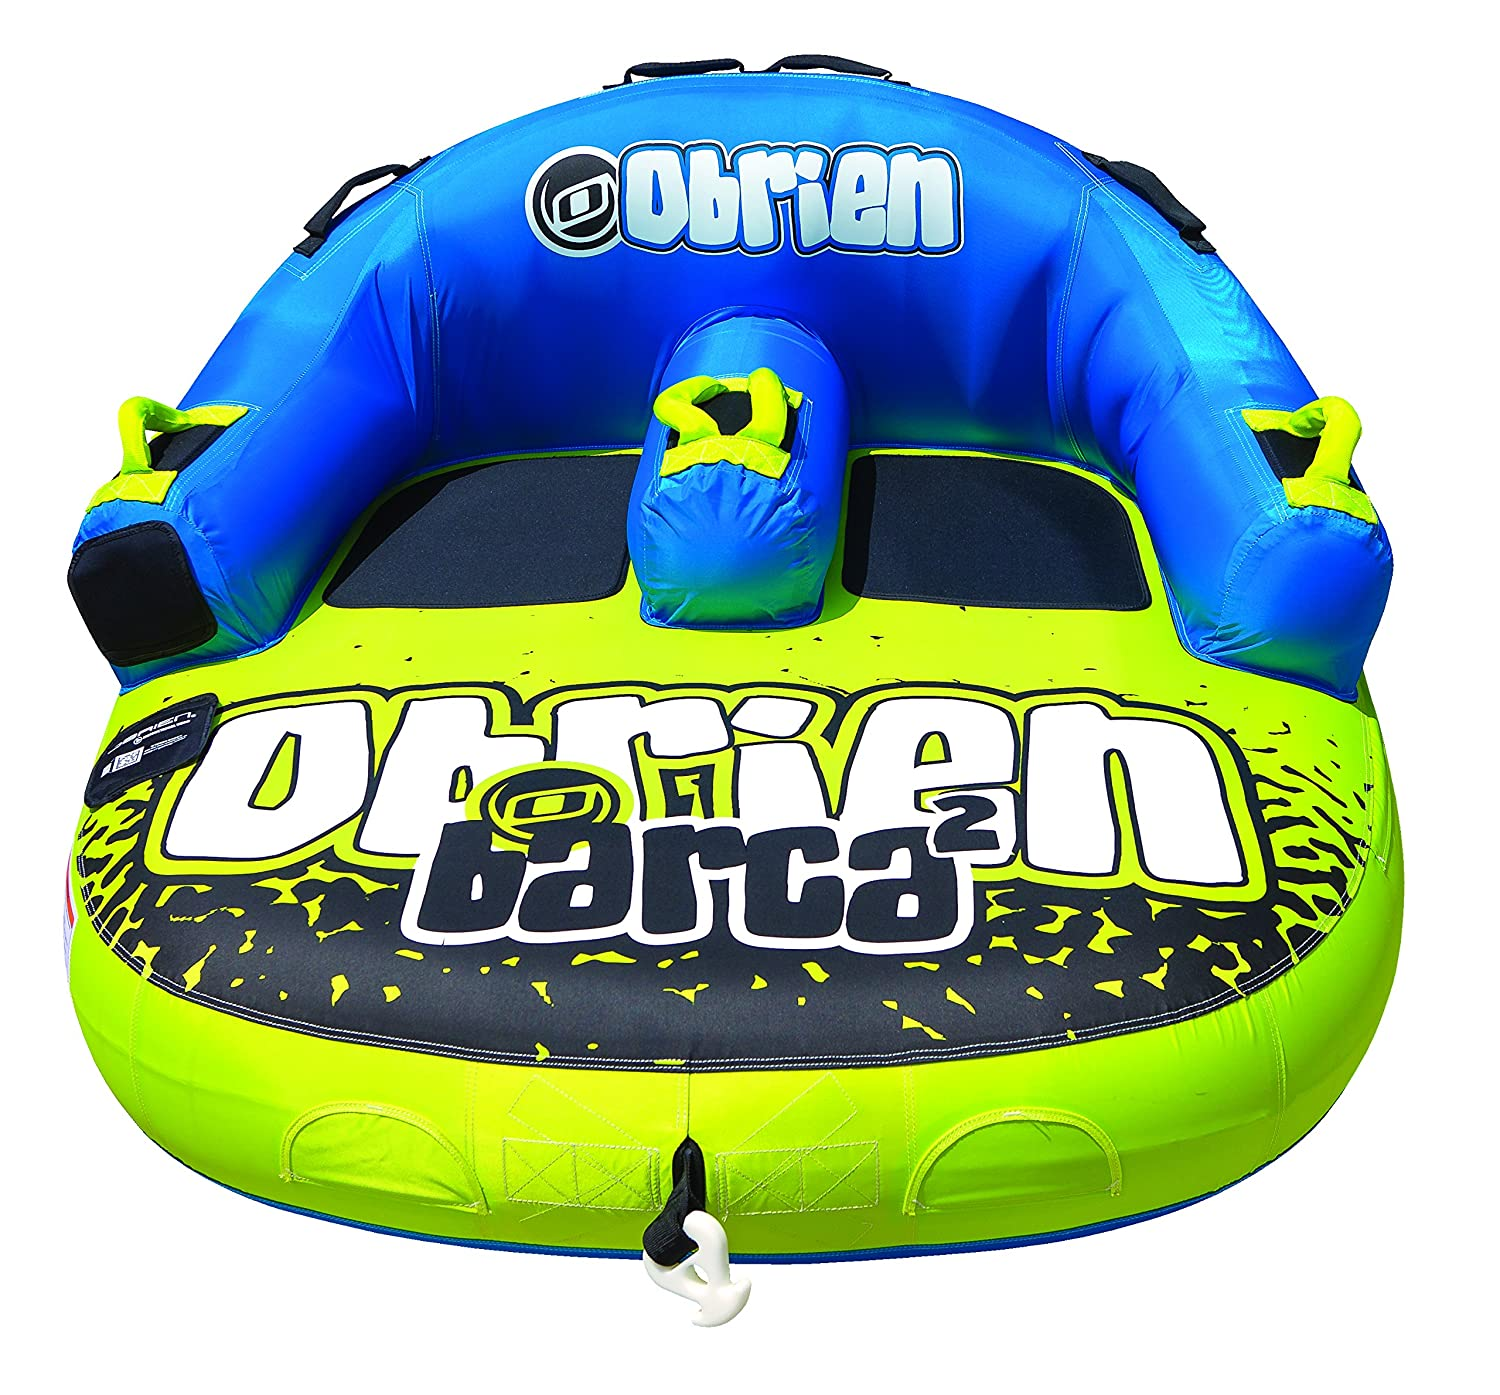 O'Brien Barcas 2 Towable Tube